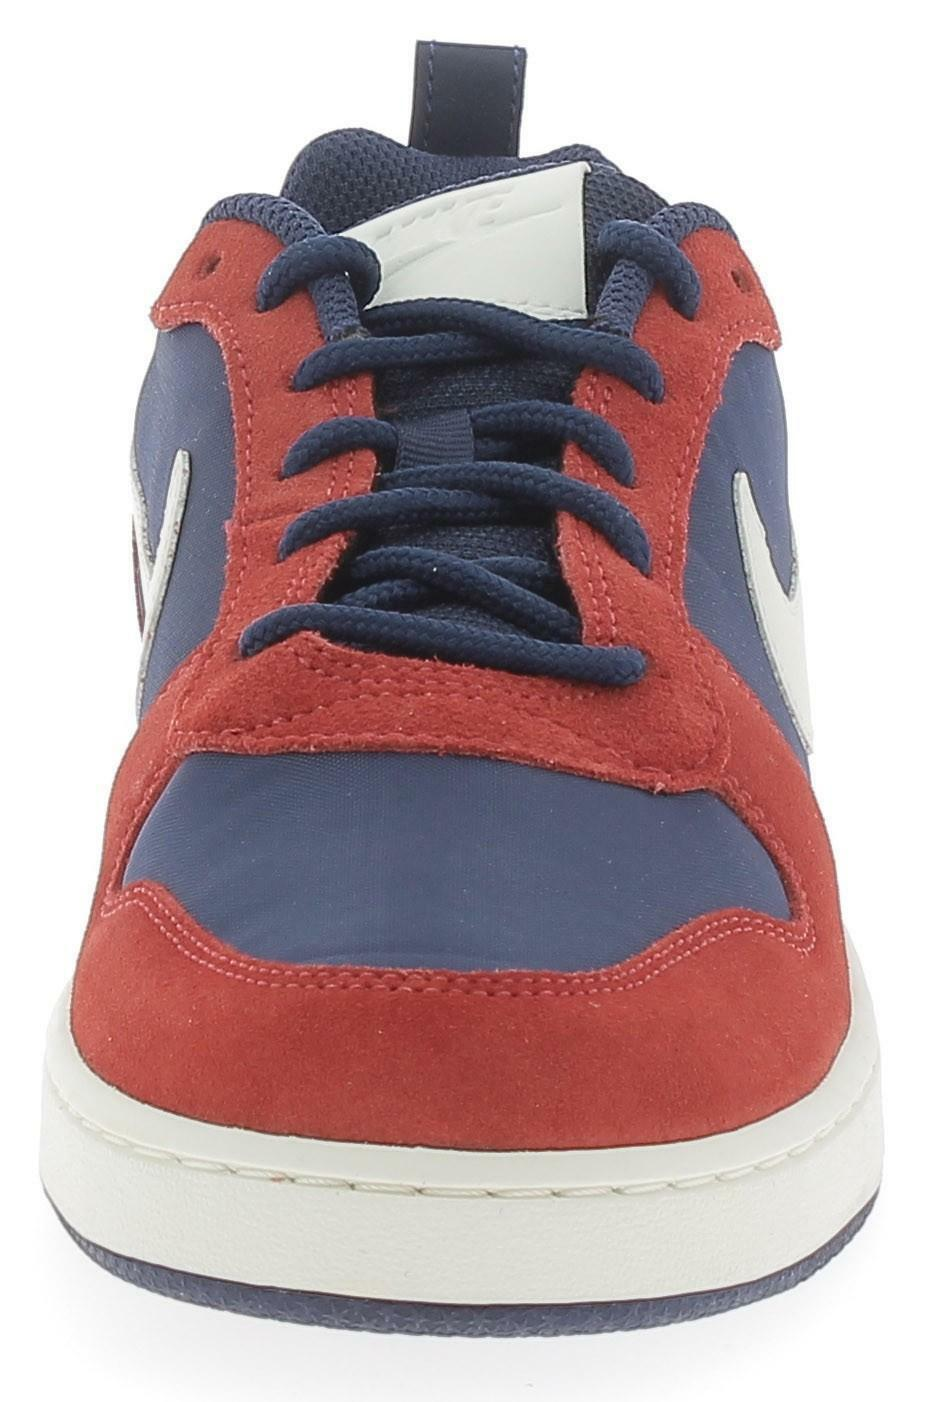 nike nike court borough low prem scarpe sportive uomo rosse blu